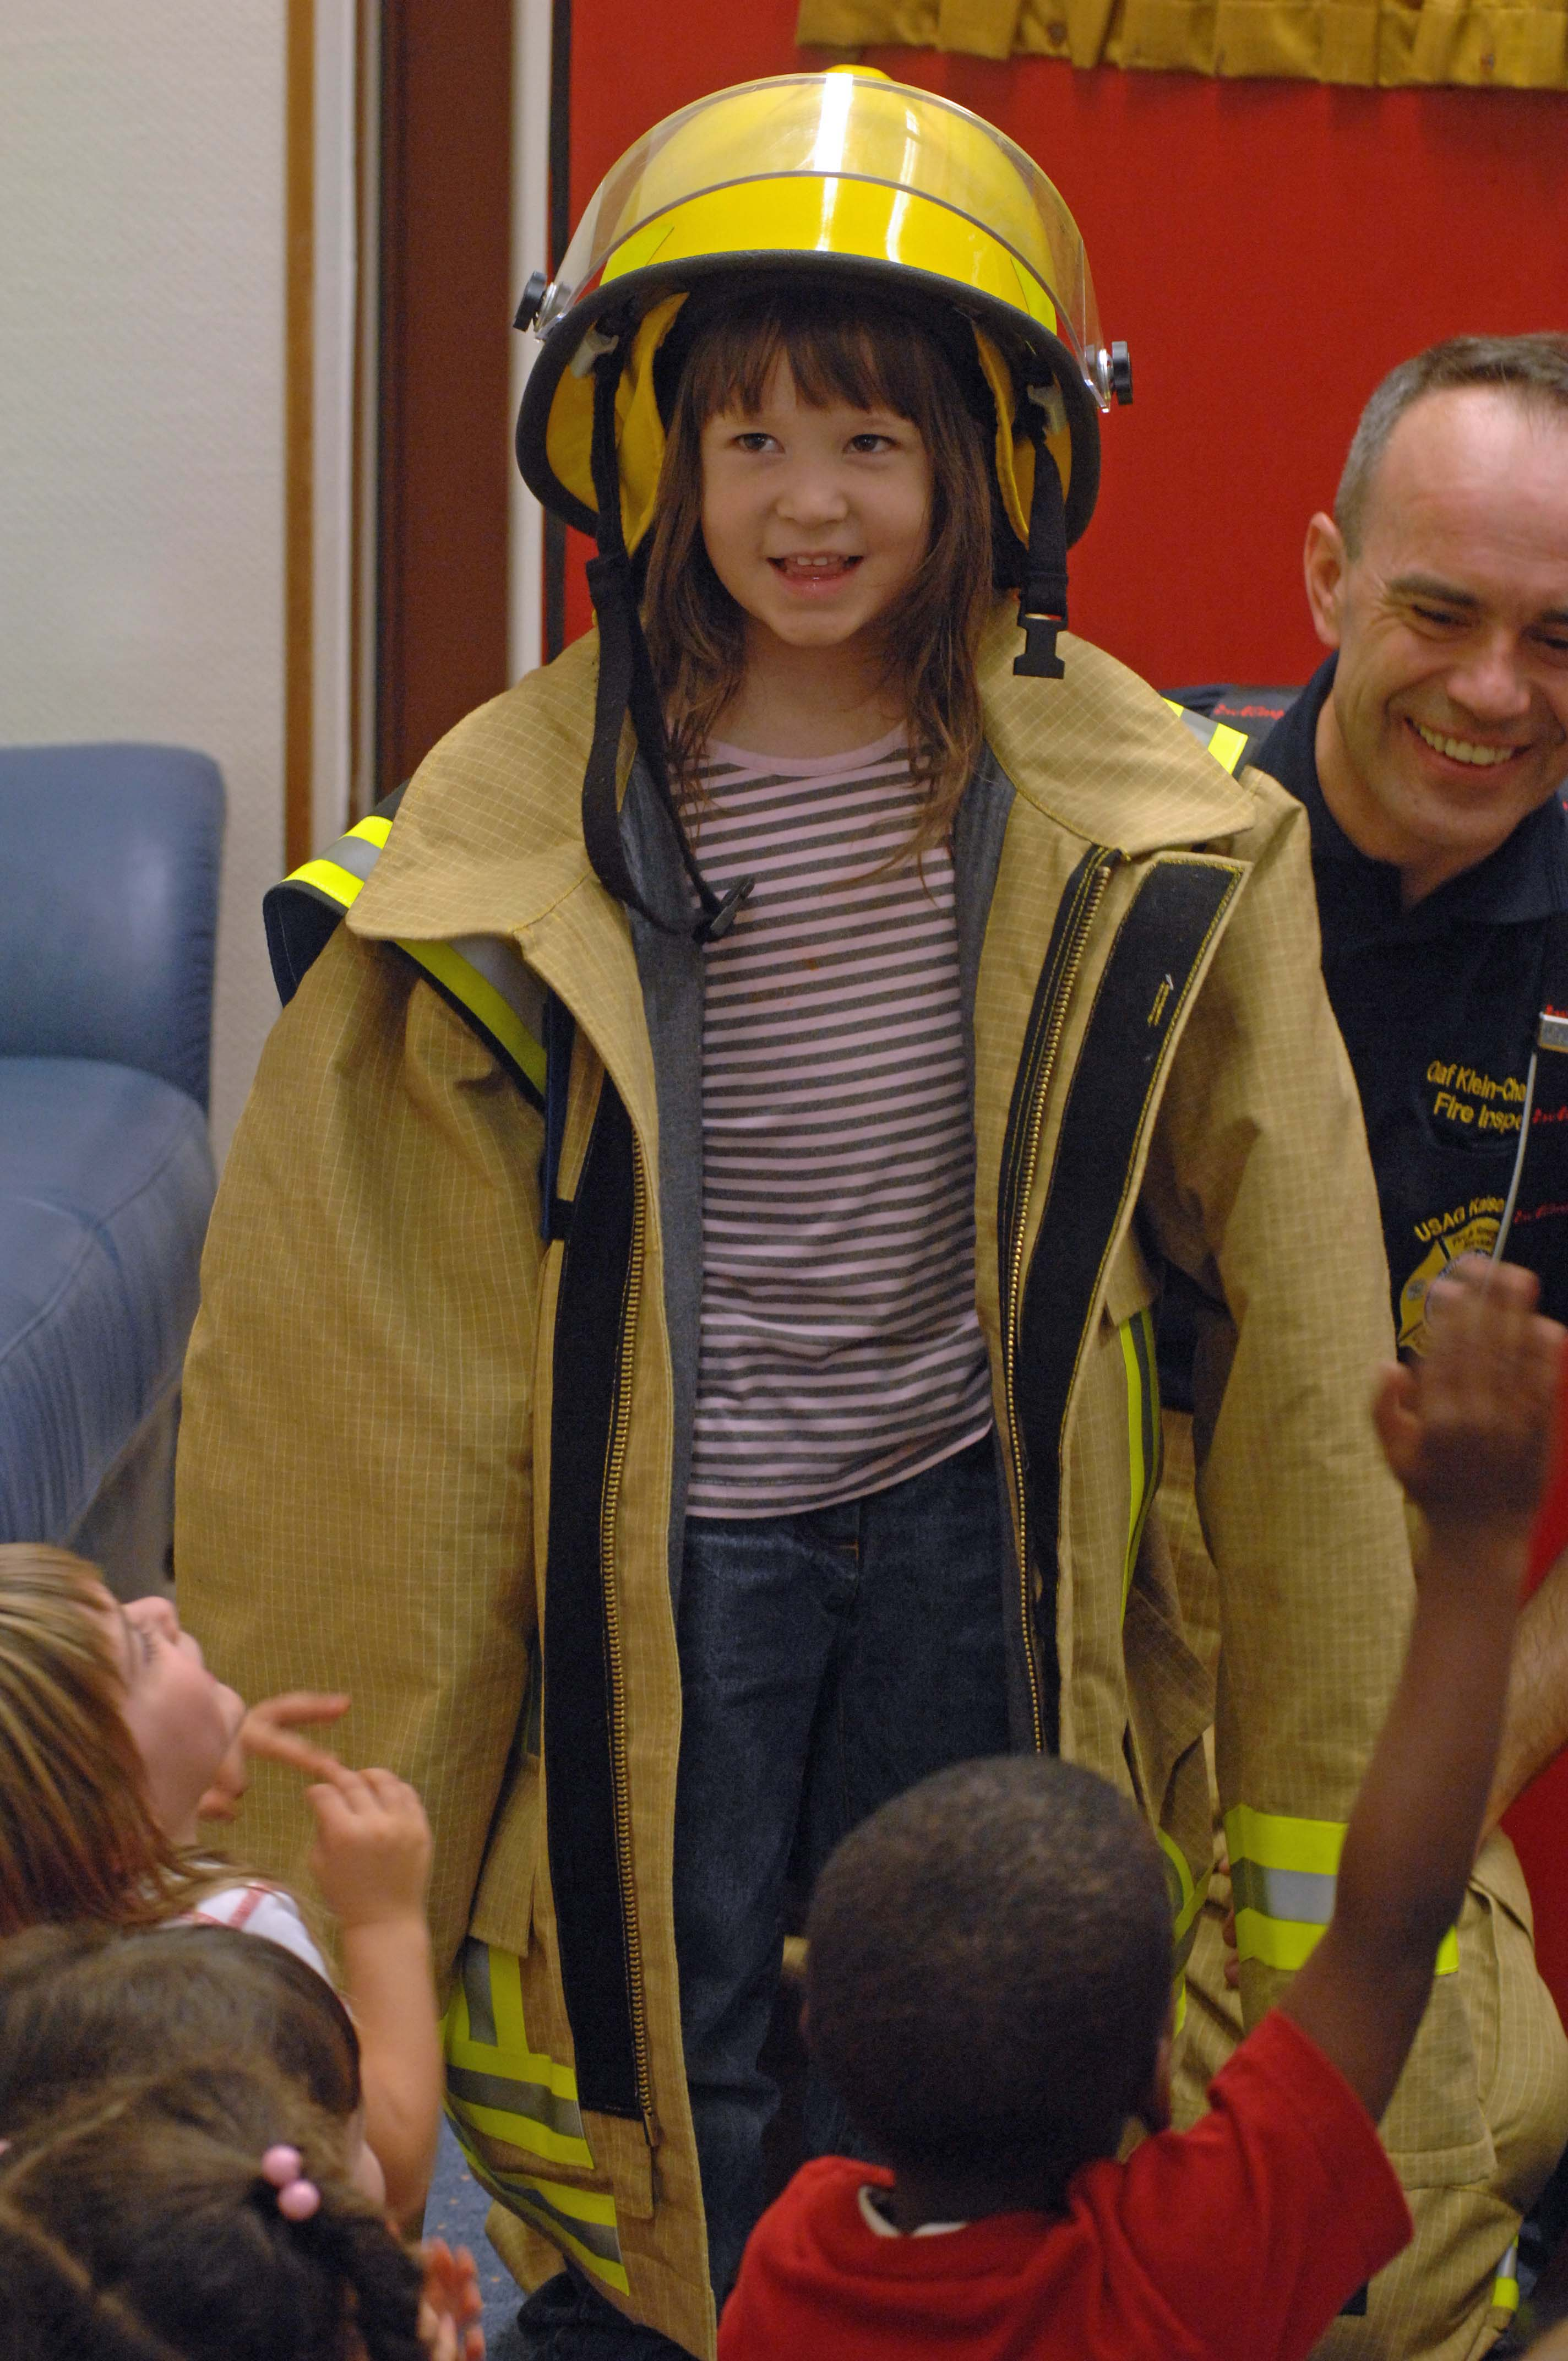 Girl dressed like firefighter